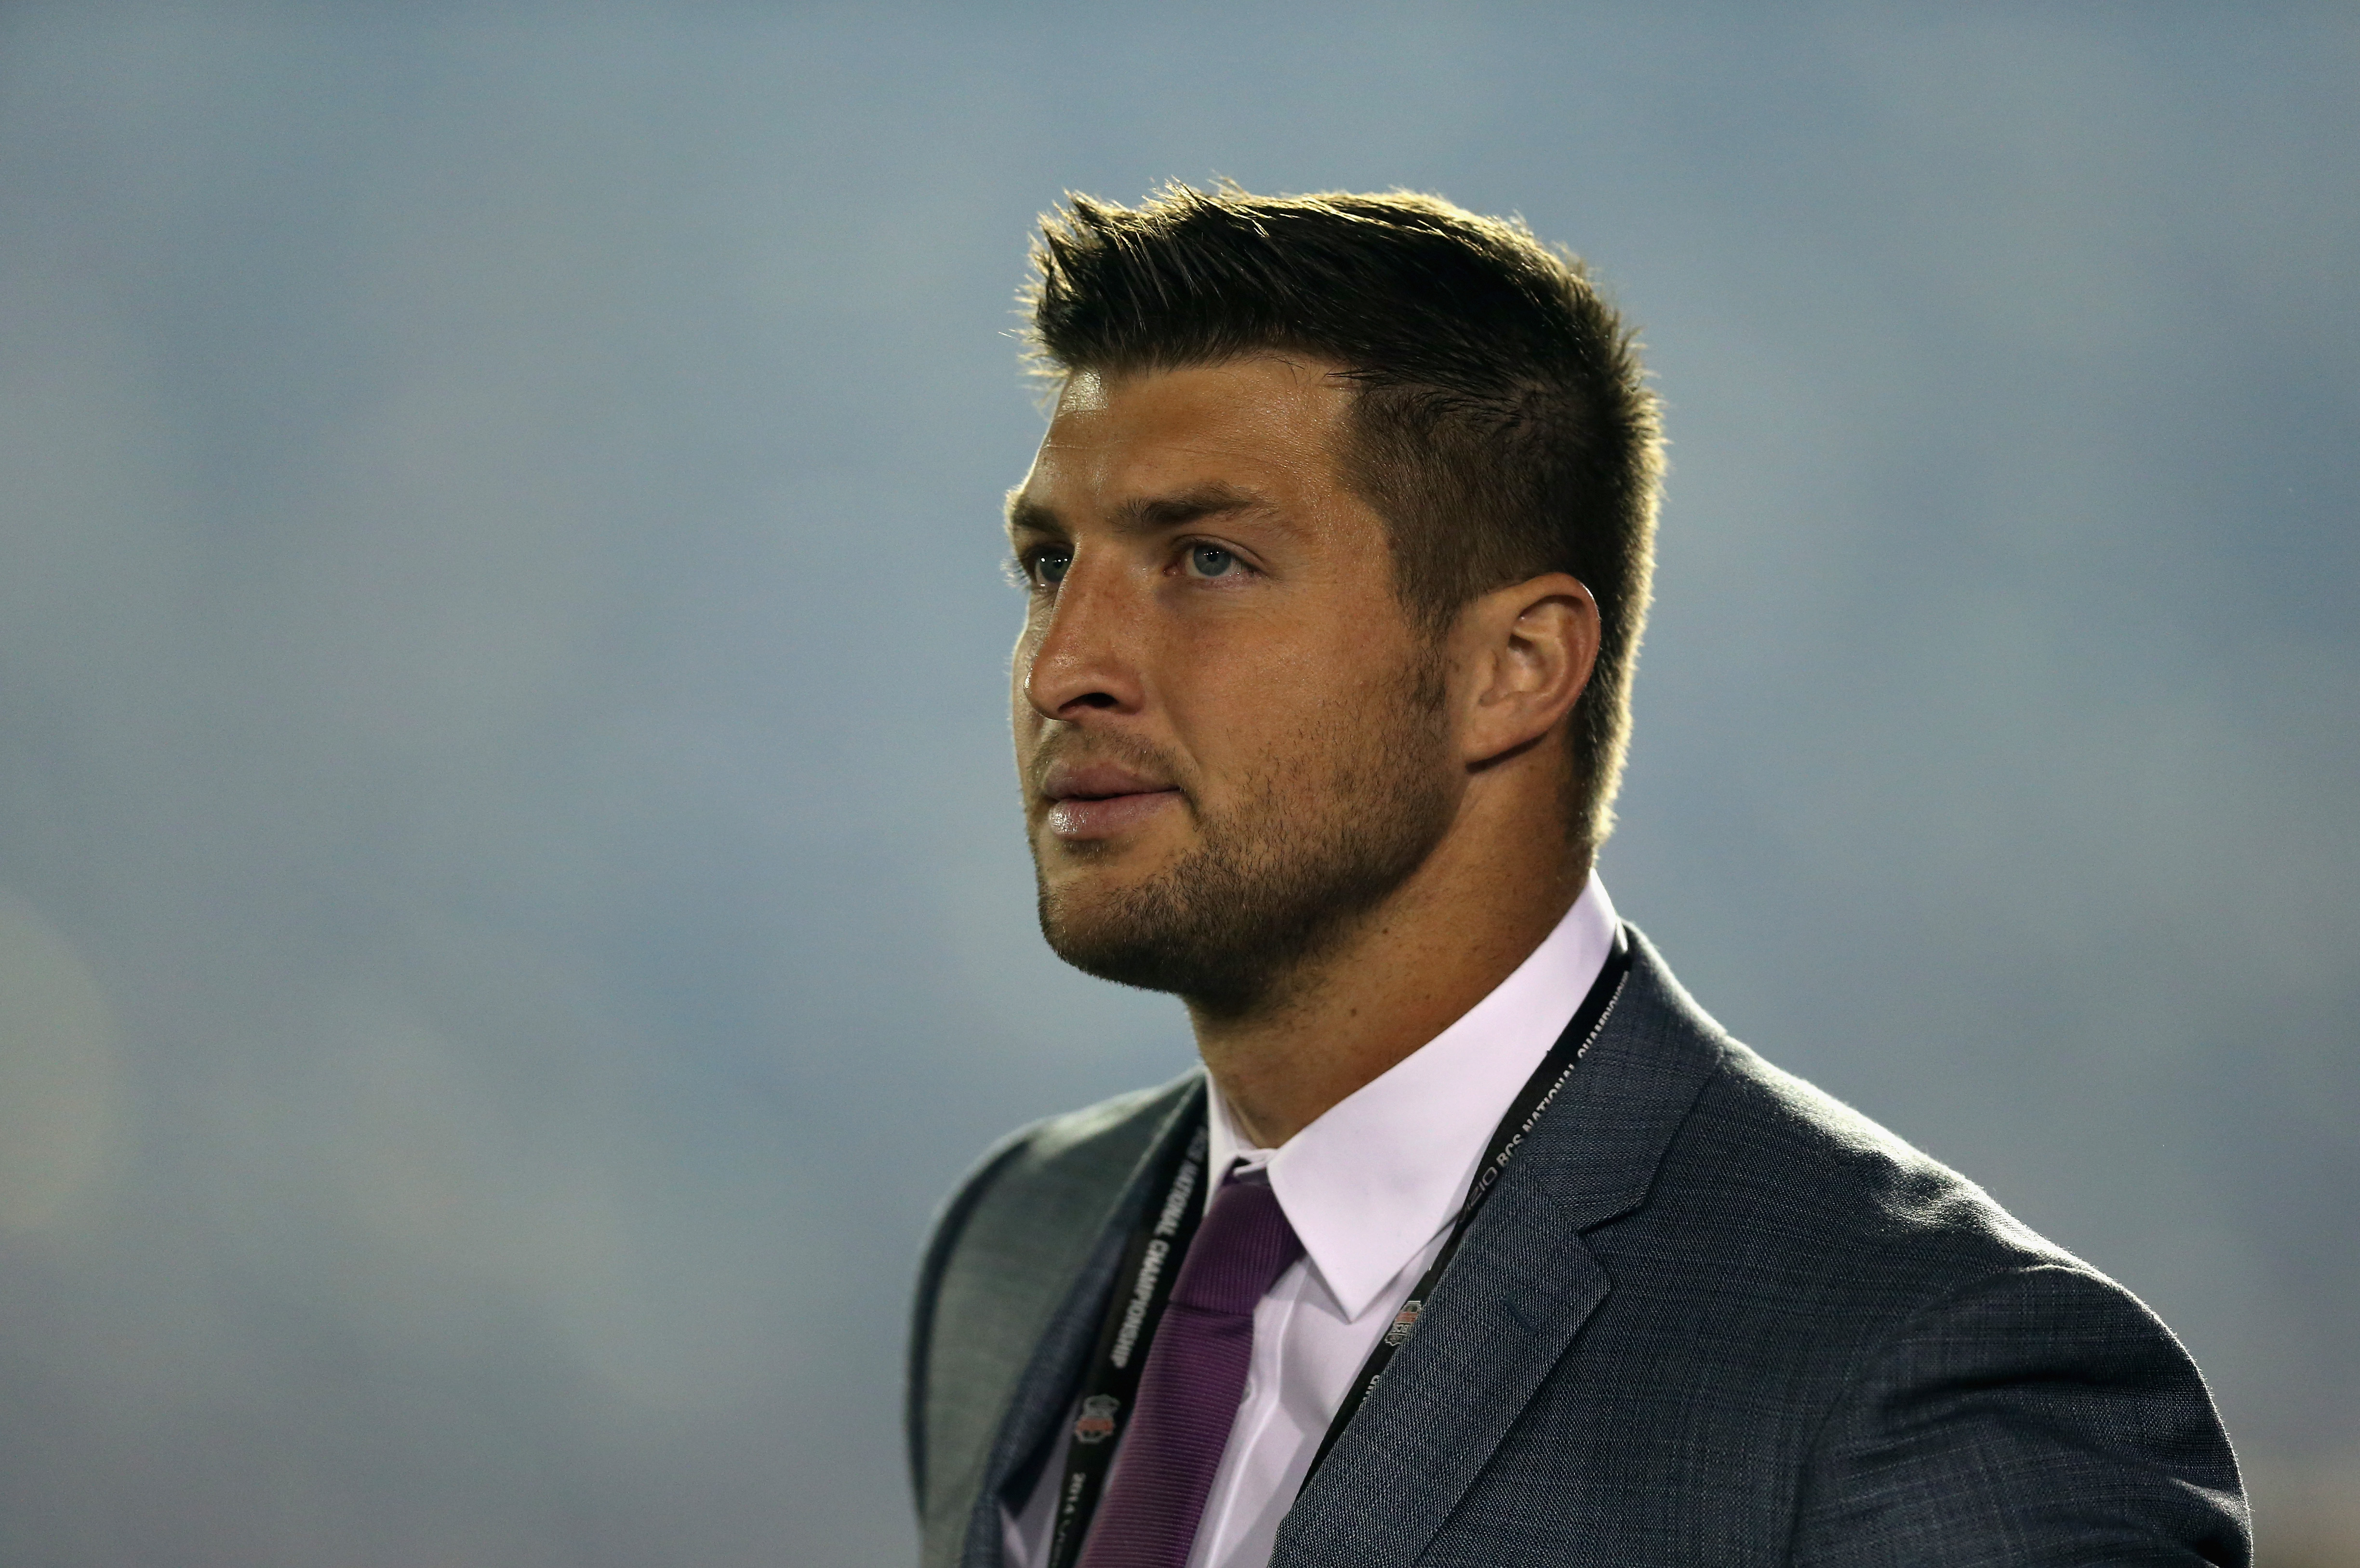 PASADENA, CA - JANUARY 06:  ESPN analyst Tim Tebow looks on during the 2014 Vizio BCS National Championship Game between the Florida State Seminoles and the Auburn Tigers at the Rose Bowl on January 6, 2014 in Pasadena, California.  (Photo by Jeff Gross/Getty Images)